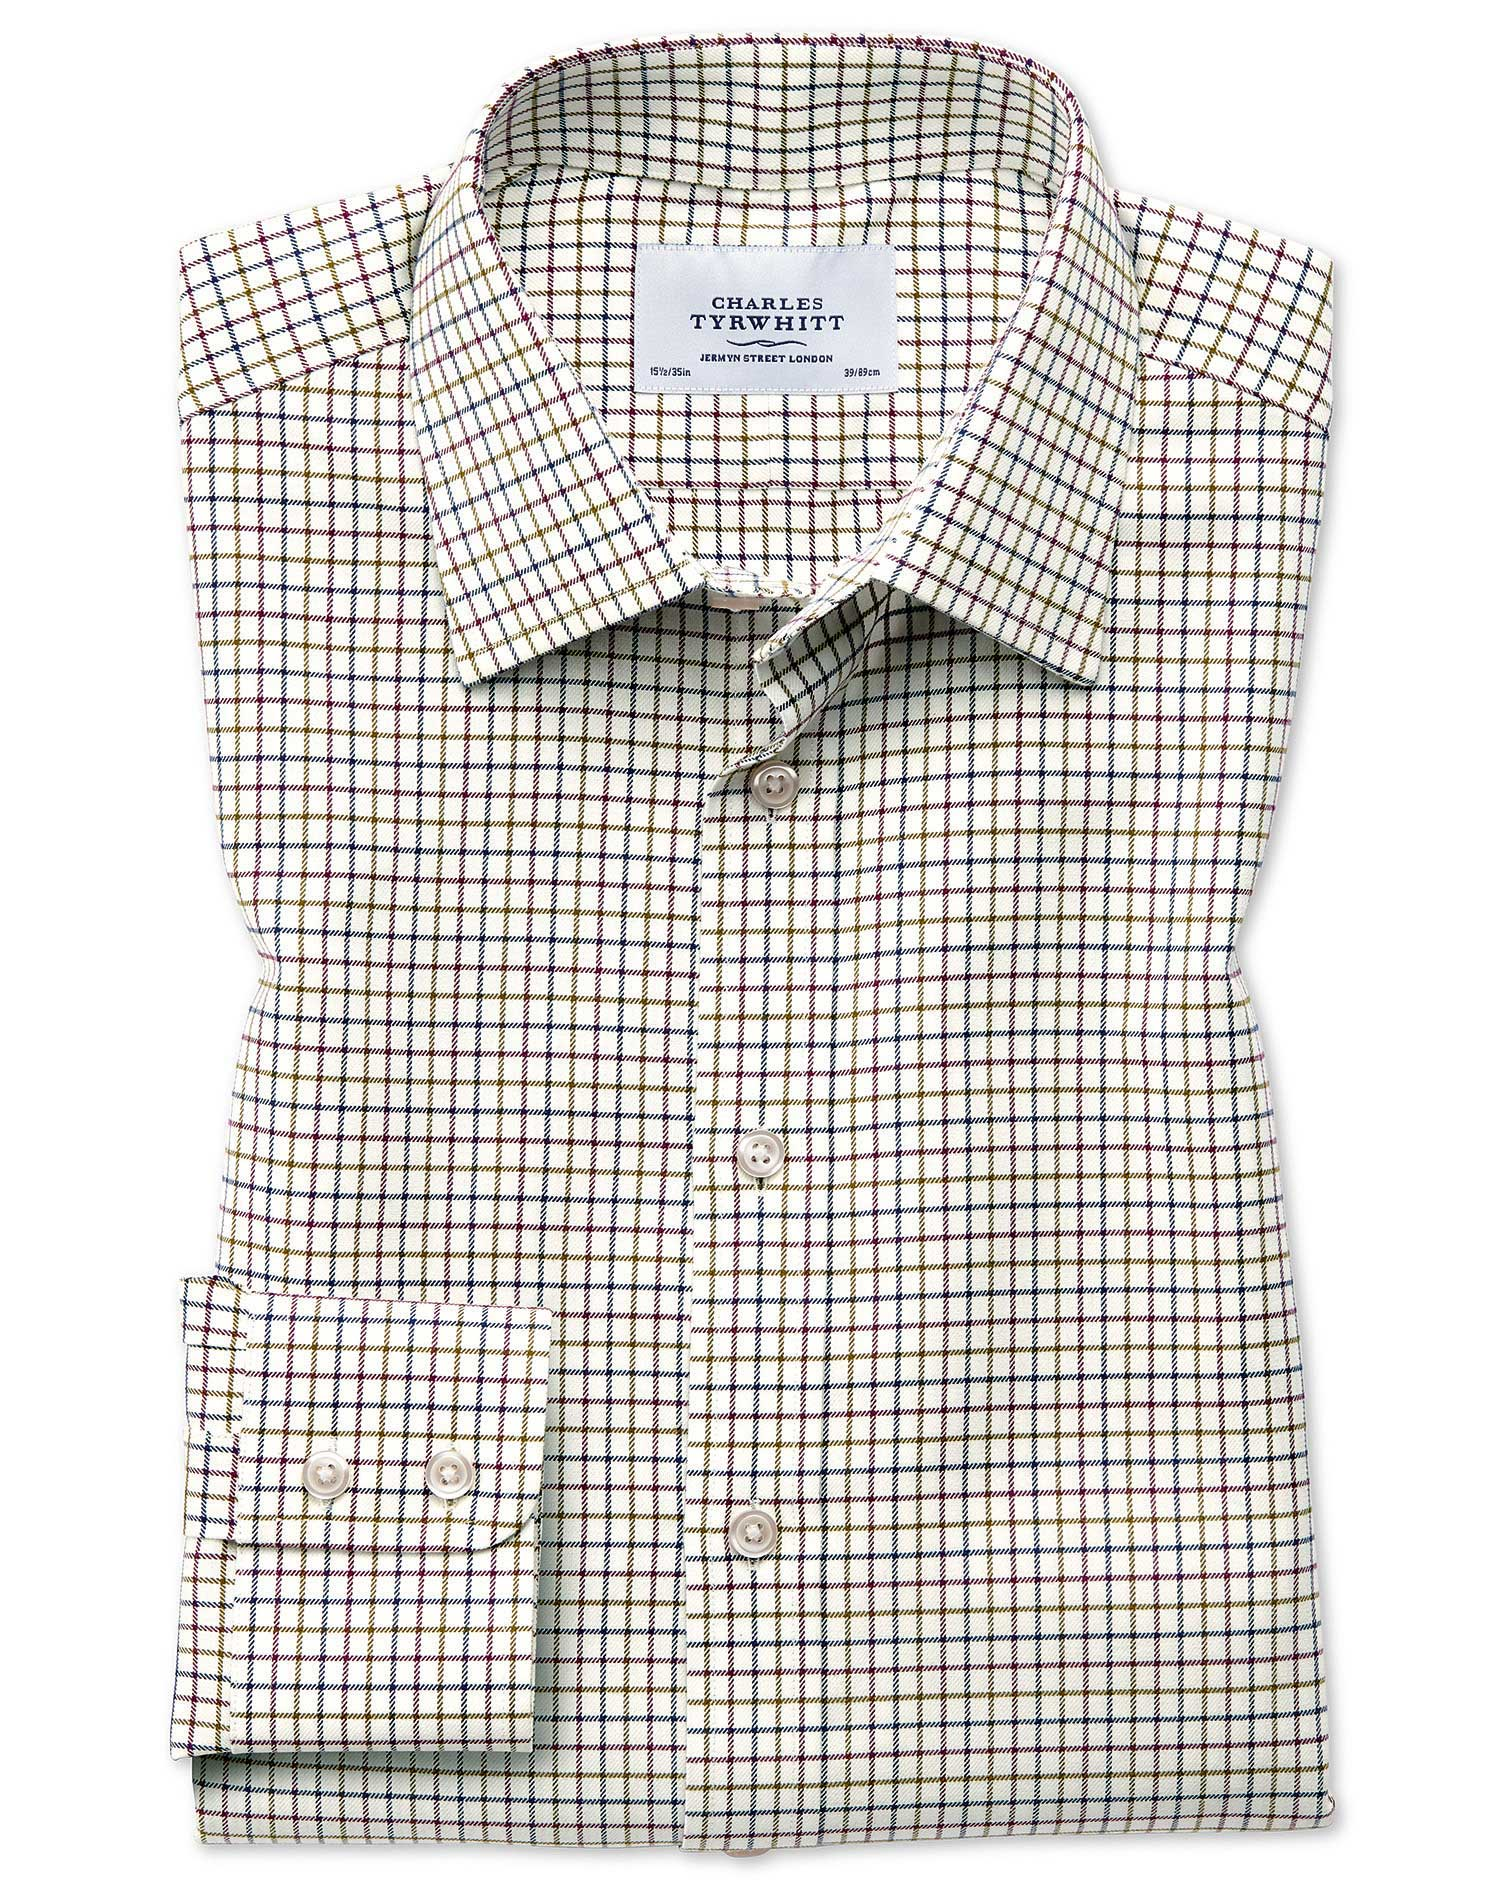 Classic Fit Country Check Purple and Green Cotton Formal Shirt Single Cuff Size 16.5/33 by Charles T